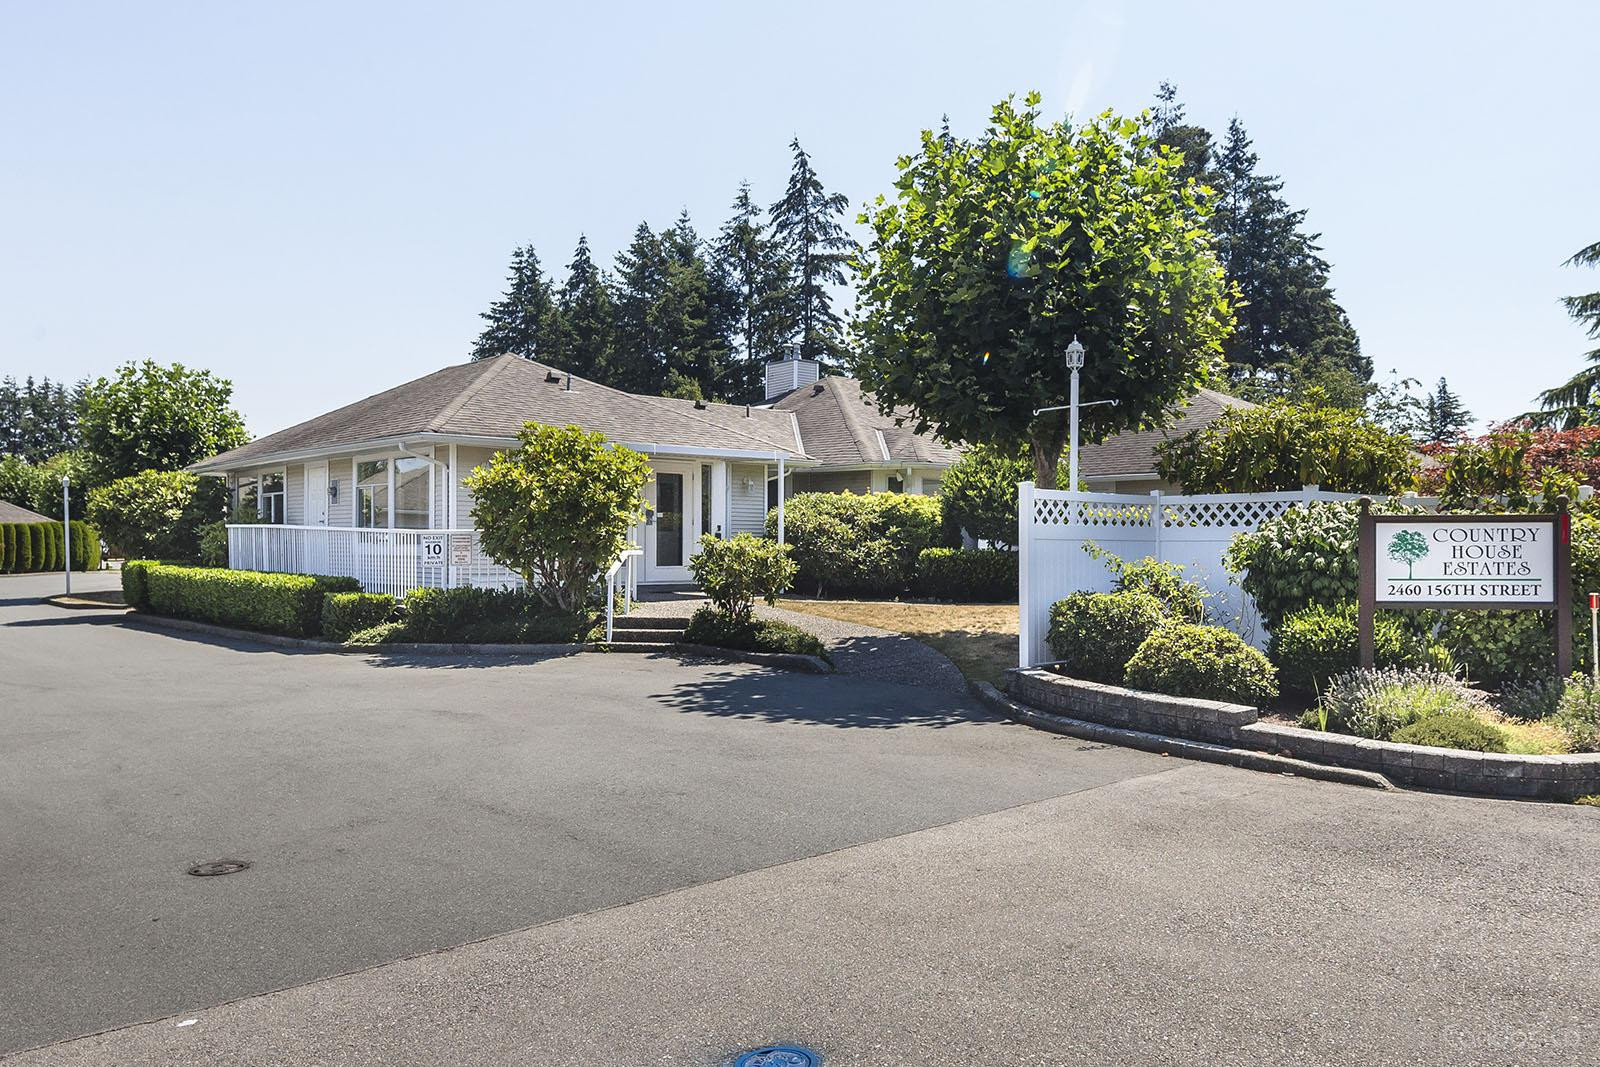 Country House Estates at 2460 156 St, Surrey 1